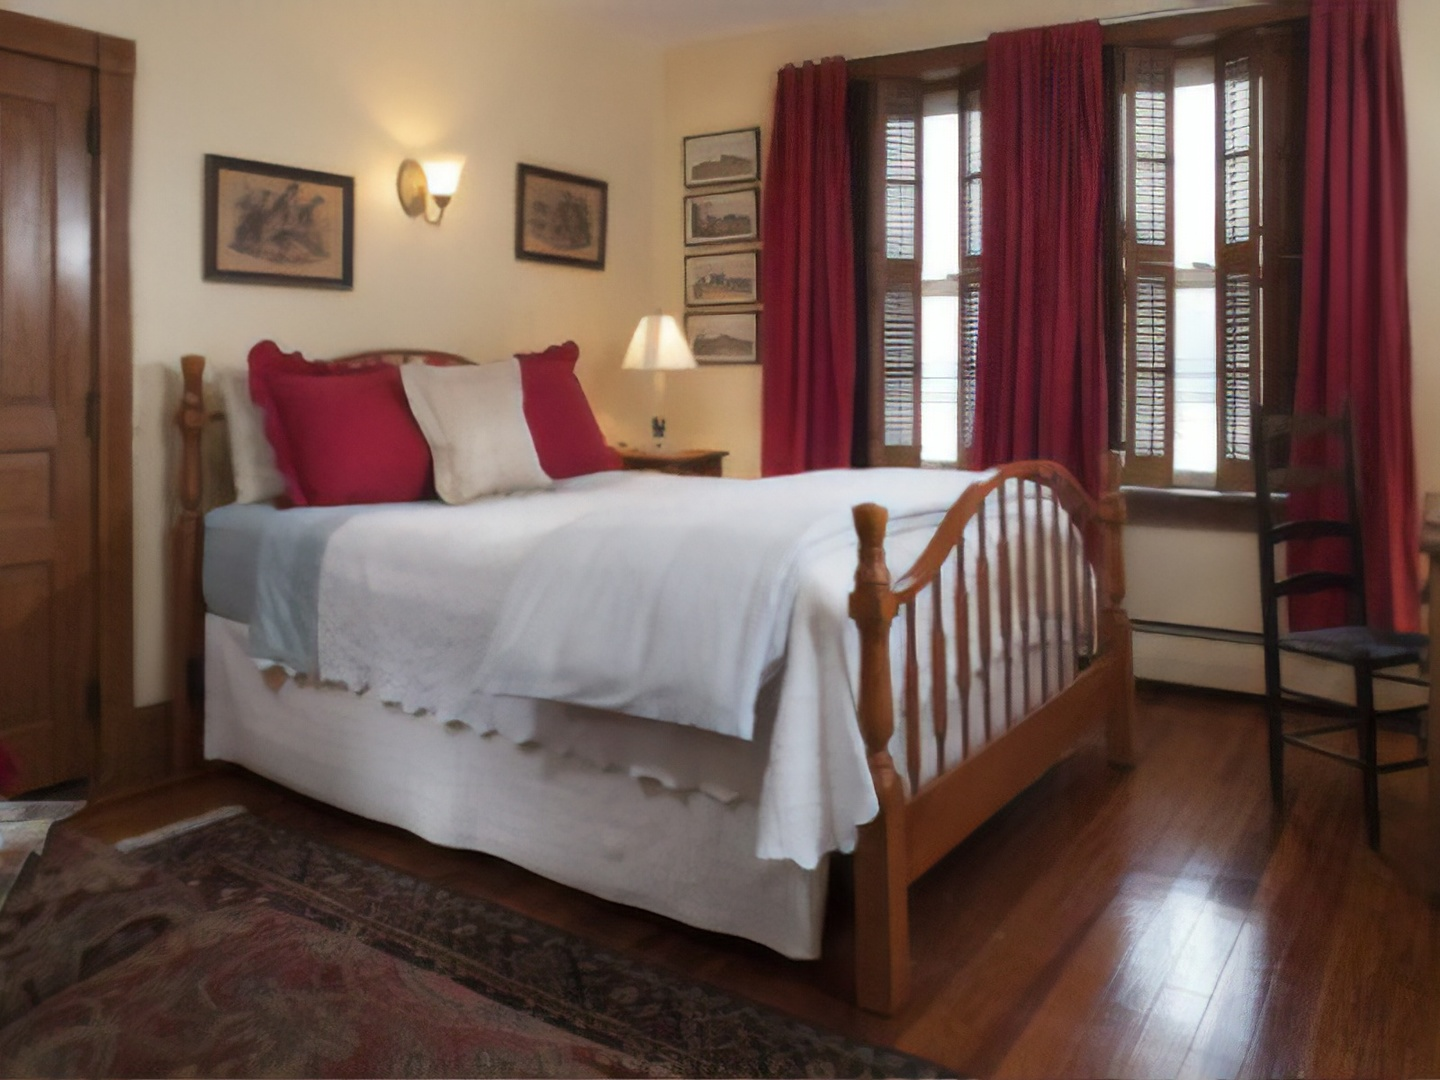 A bedroom with a large bed in a room at Harvest Moon Bed & Breakfast.